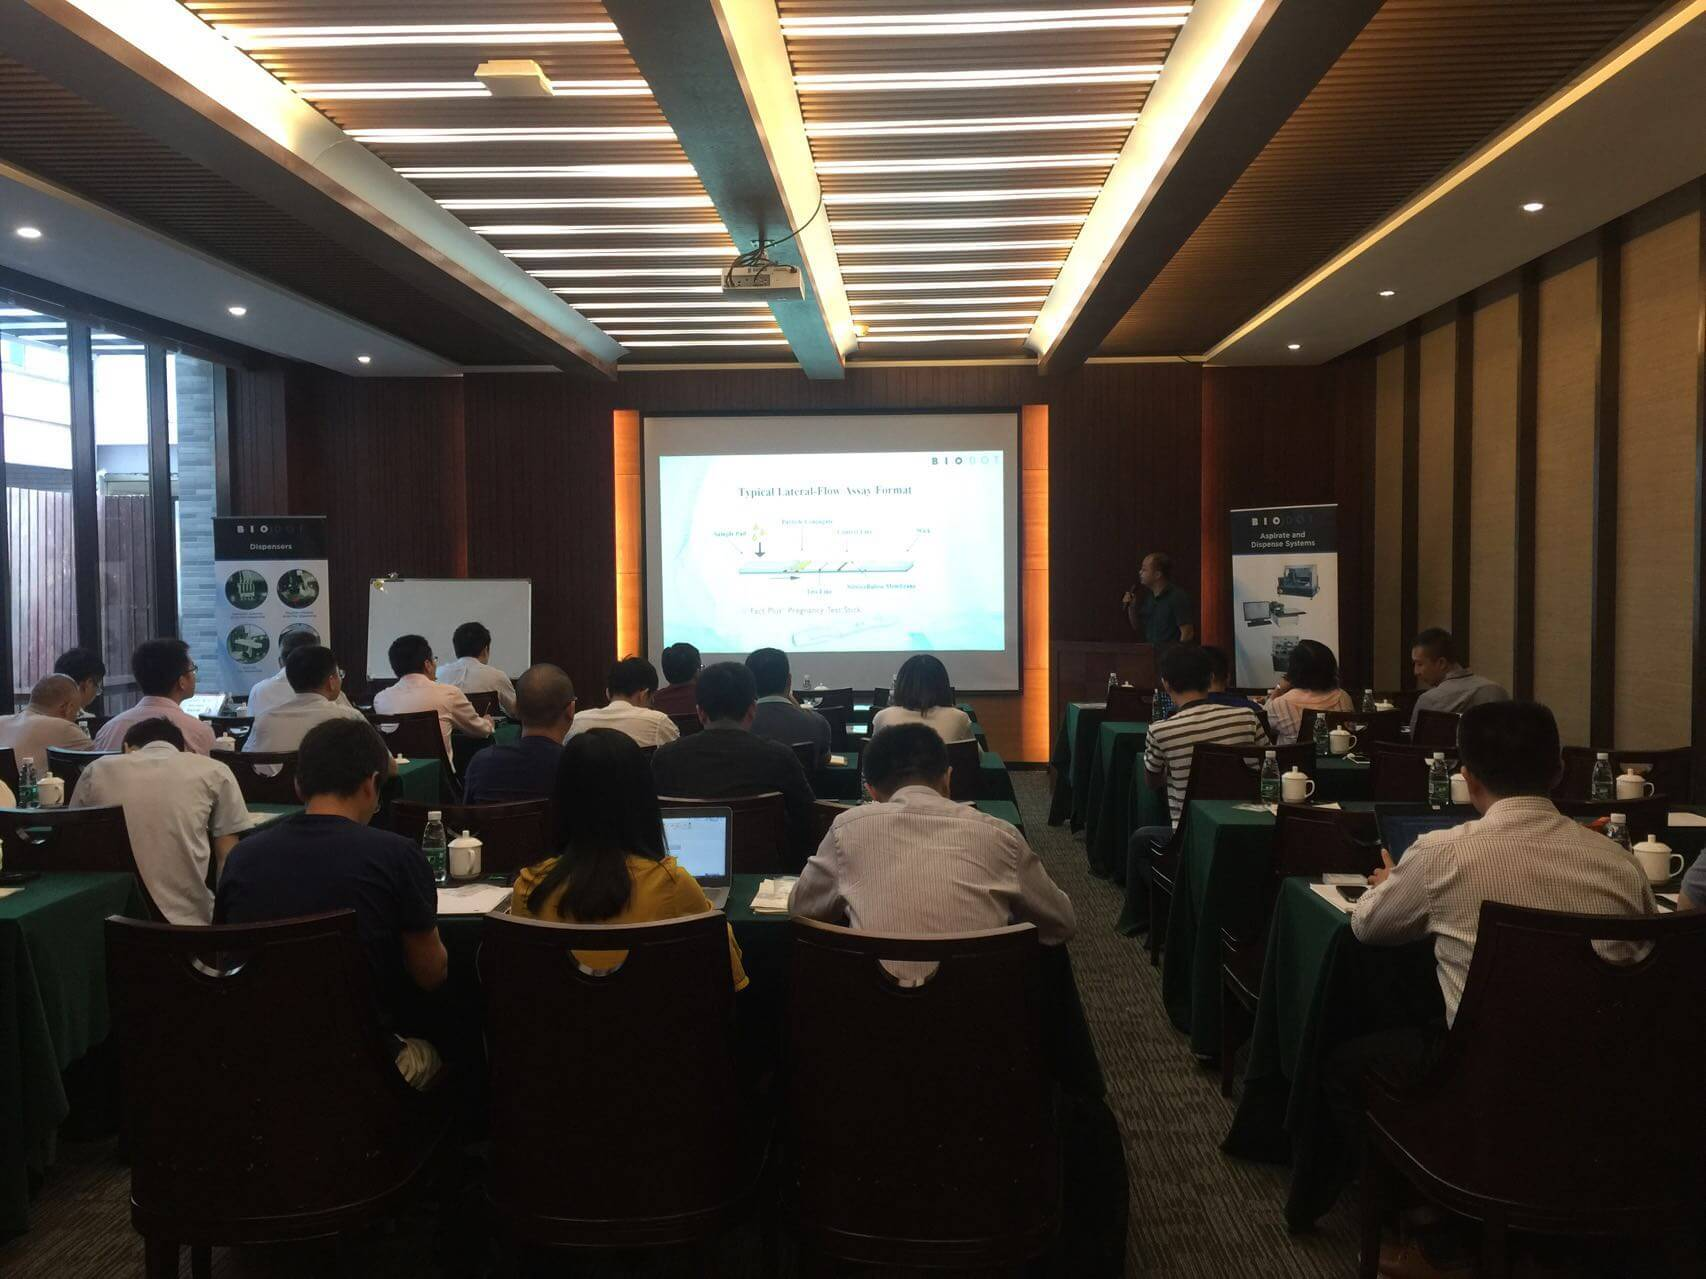 Solutions for Microfluidic Chip and Biosensor Applications from R&D to Manufacture, GuiLin 2017